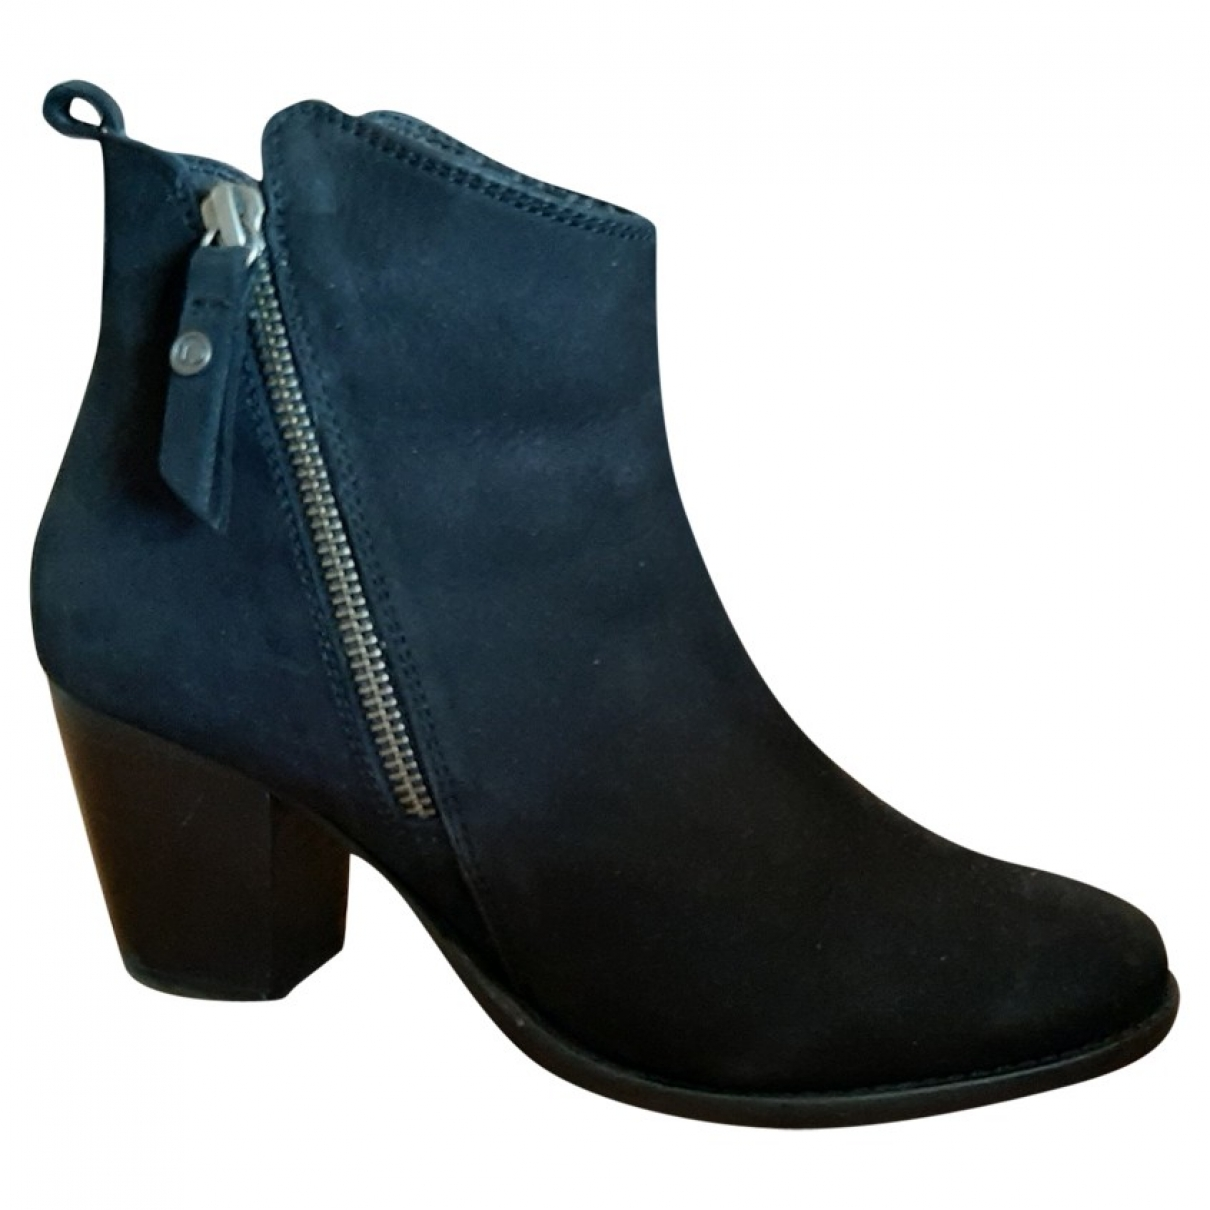 Dune \N Black Leather Boots for Women 39 EU